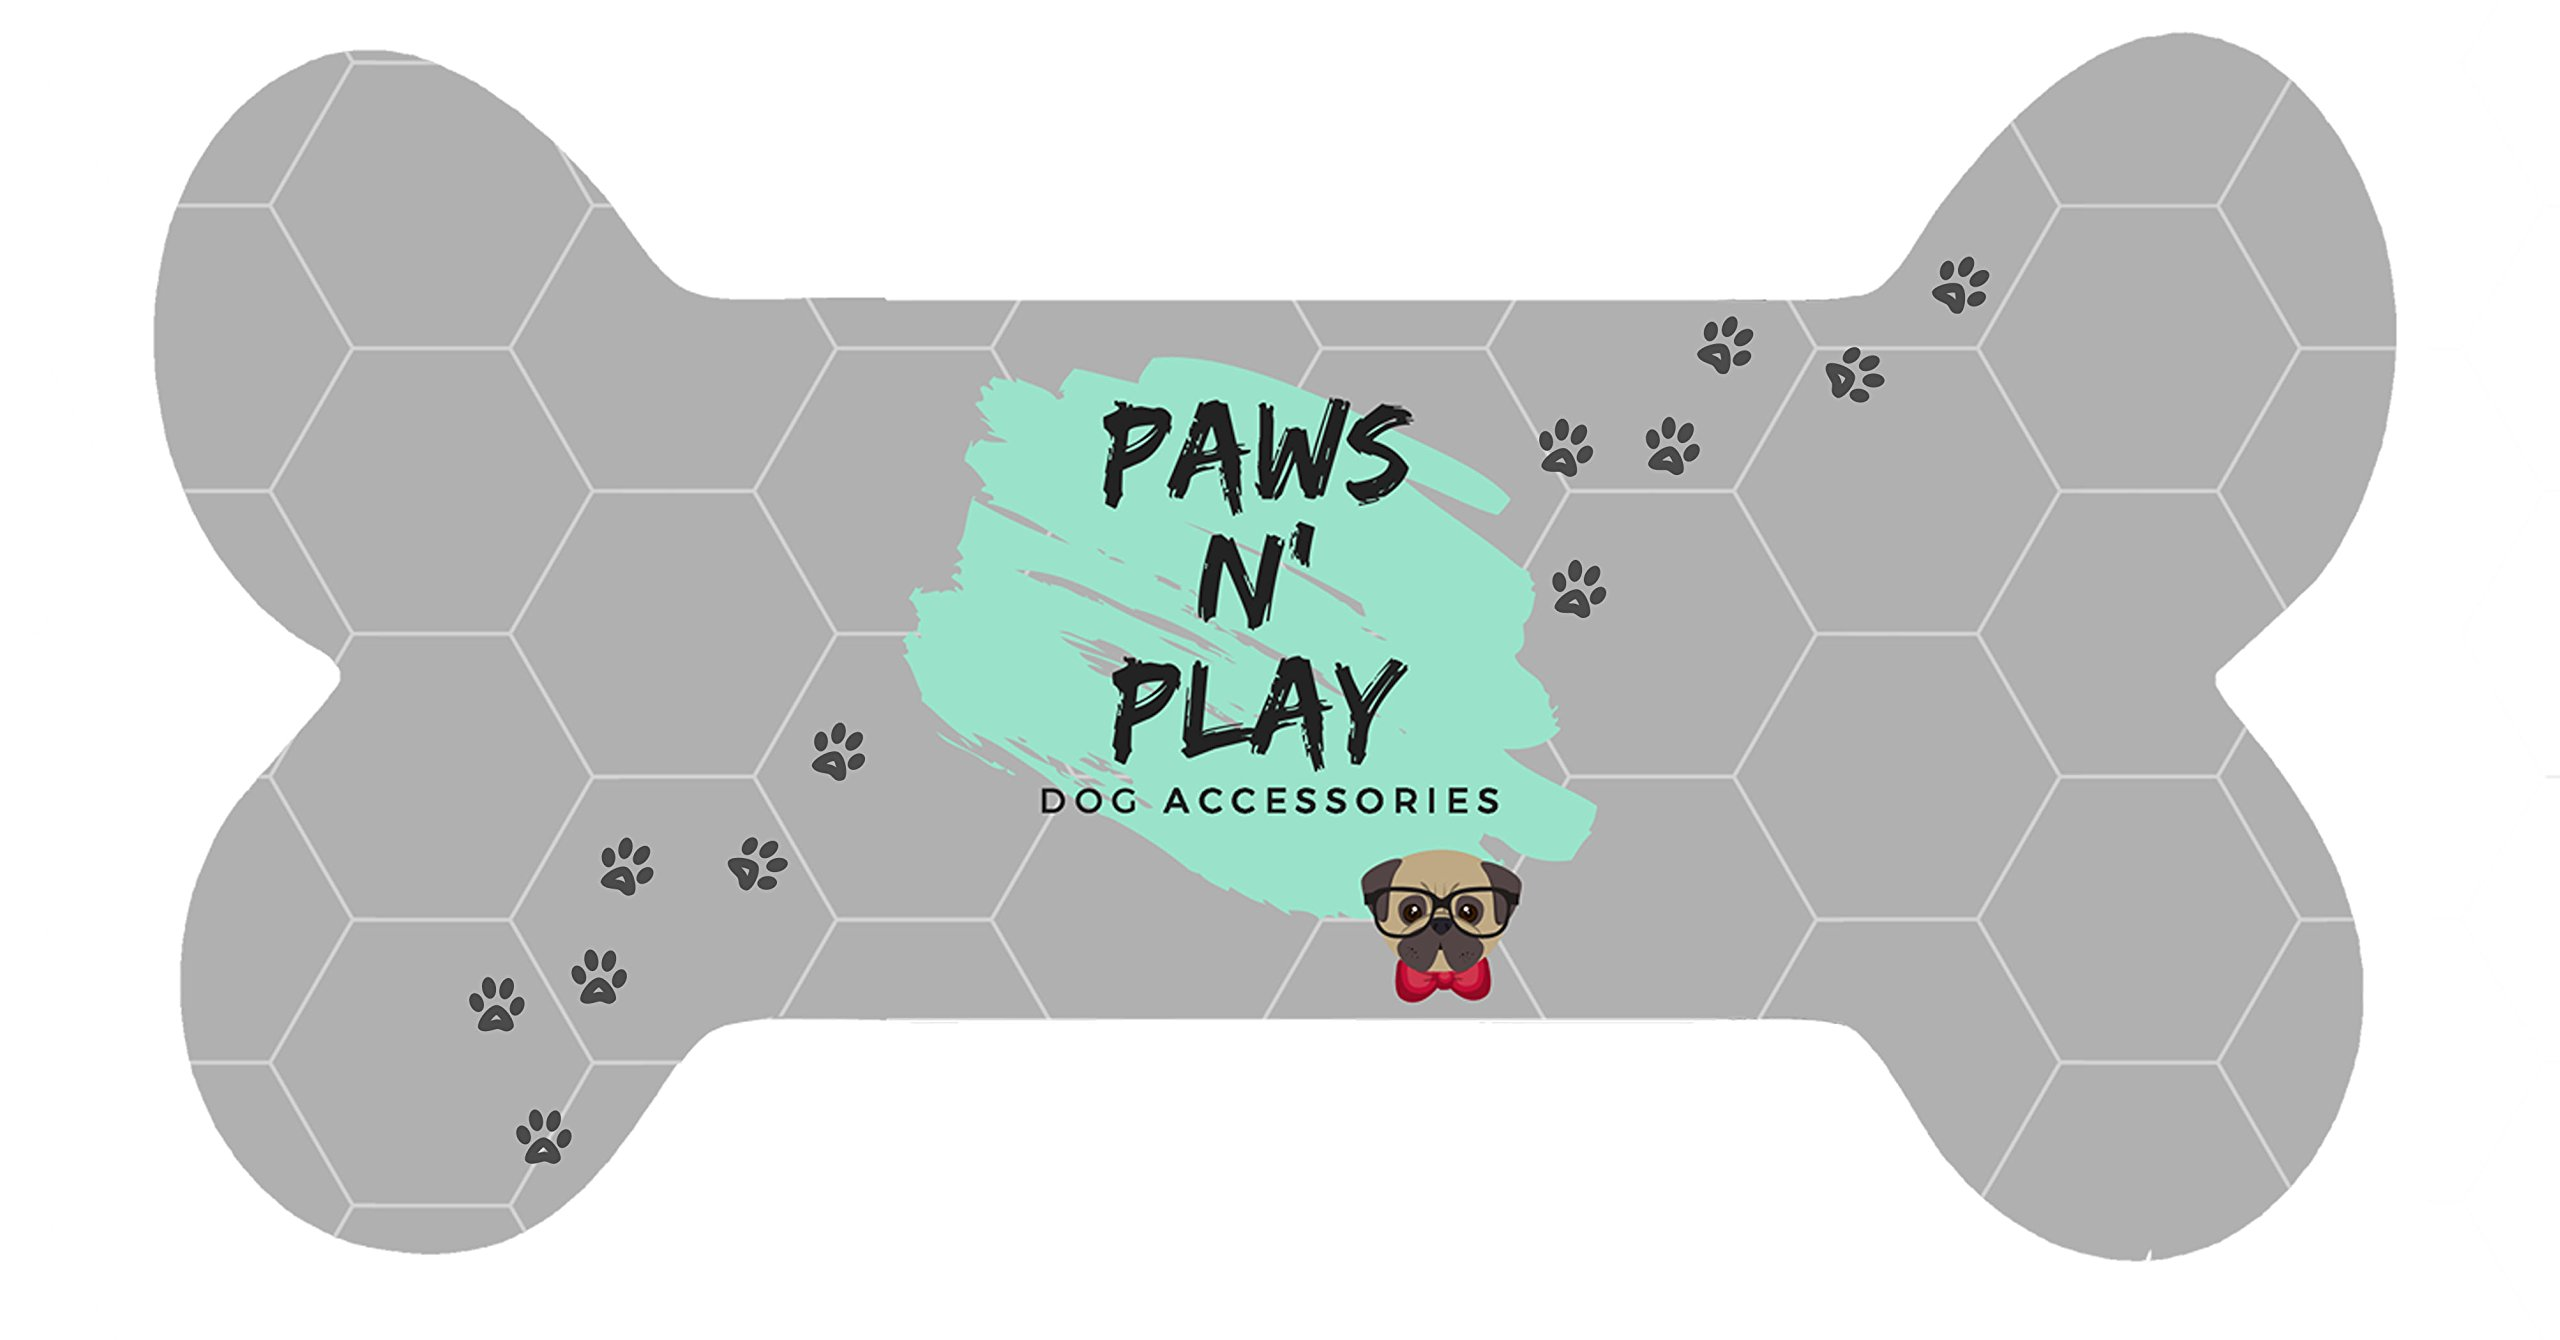 Paws n' Play 4 Piece Fun Bright Color Snap-On Pet Dog Bandana Triangle Scarf Bibs - Accessories for Dogs, Puppy, Cats - Small/Medium, Soft Cotton (Dewshine Poppy) by Paws n' Play (Image #9)